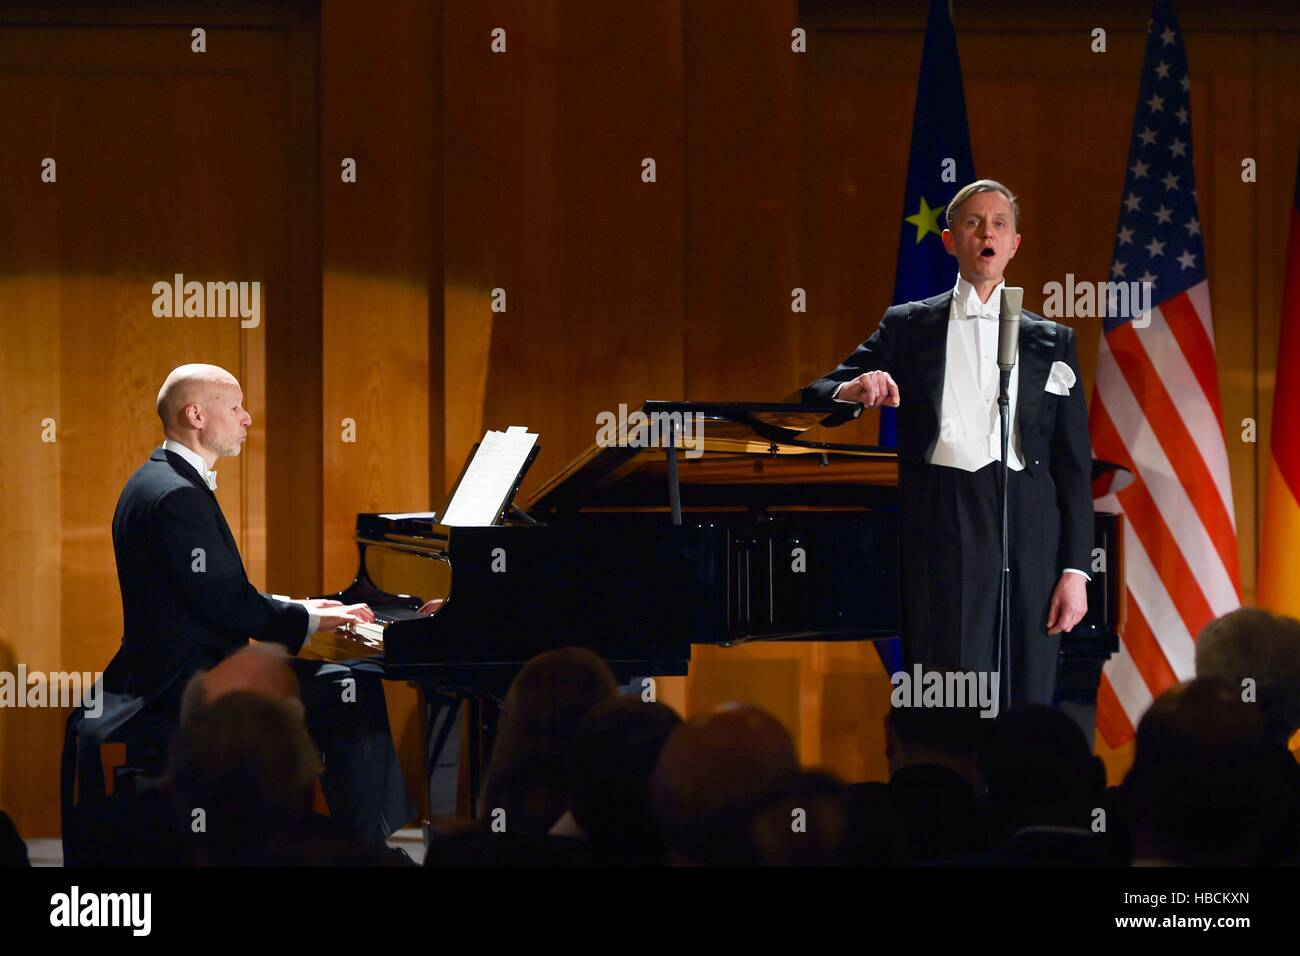 Berlin, Germany. 5th Dec, 2016. Singer Max Raabe performs after U.S. Secretary of State John Kerry received the - Stock Image